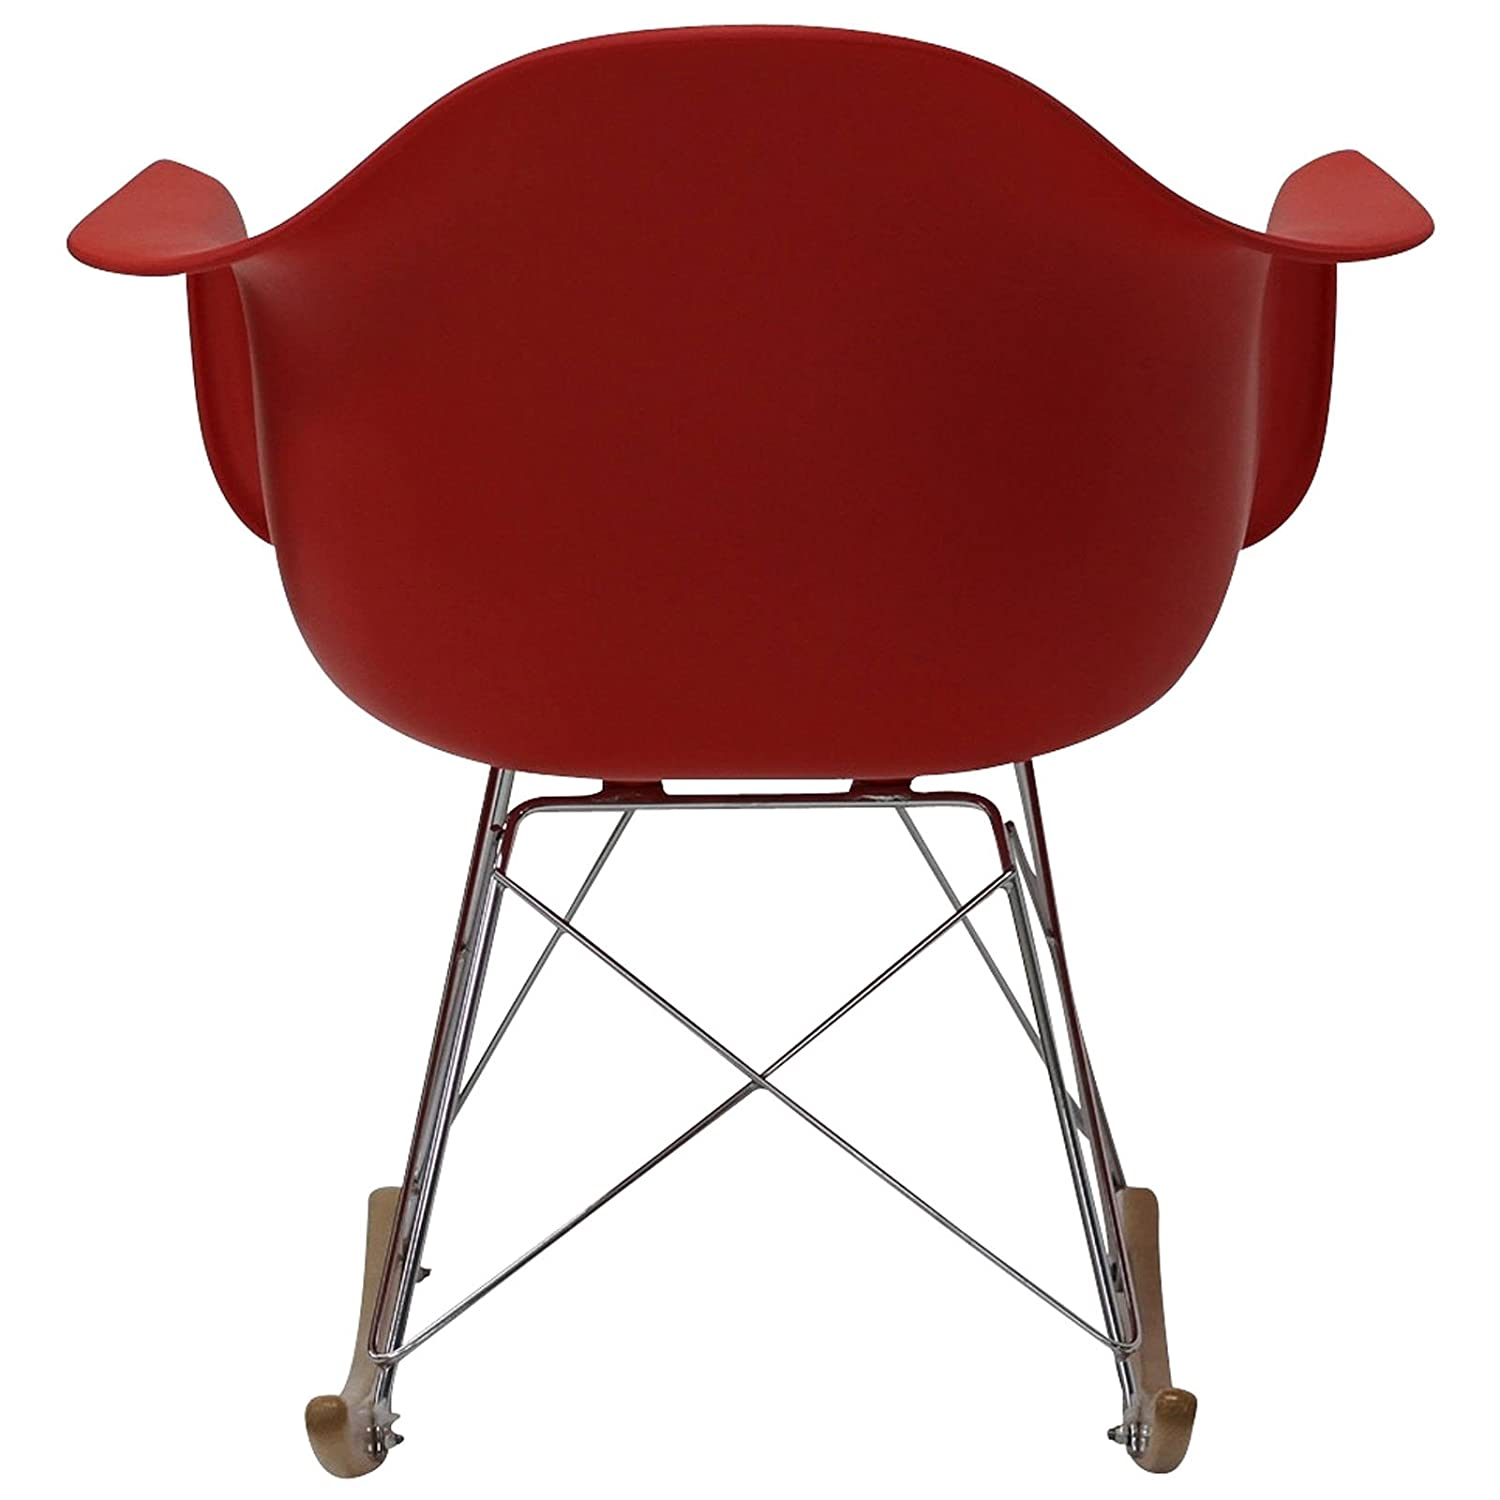 Sessel clipart  Amazon.com: Modway Molded Plastic Armchair Rocker in Red: Kitchen ...